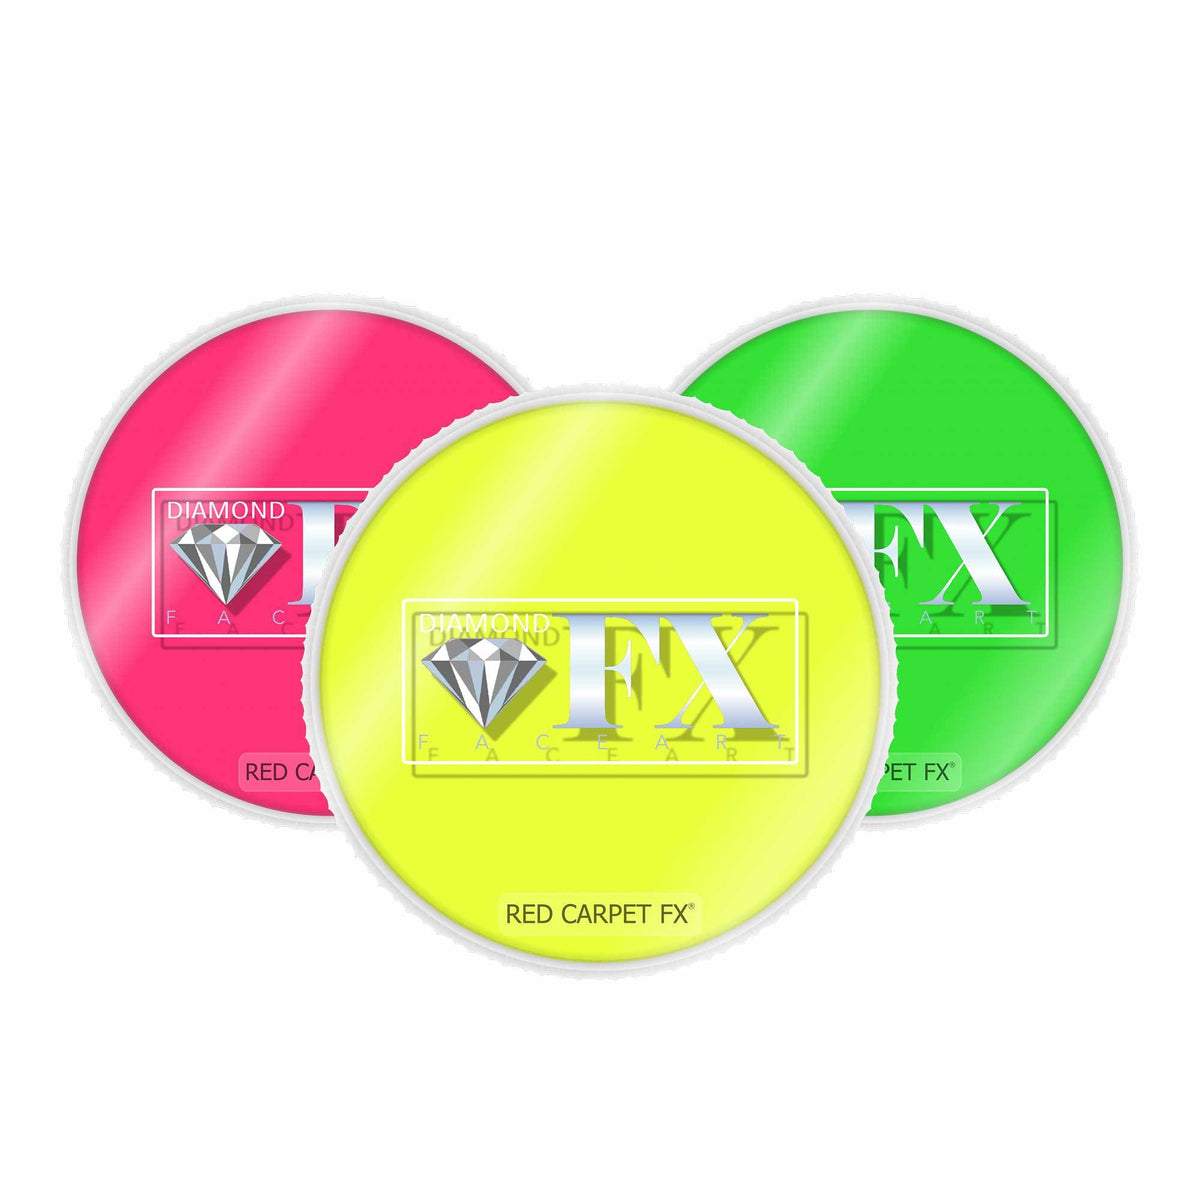 Diamond FX Cake Face & Body Paint - Neon UV